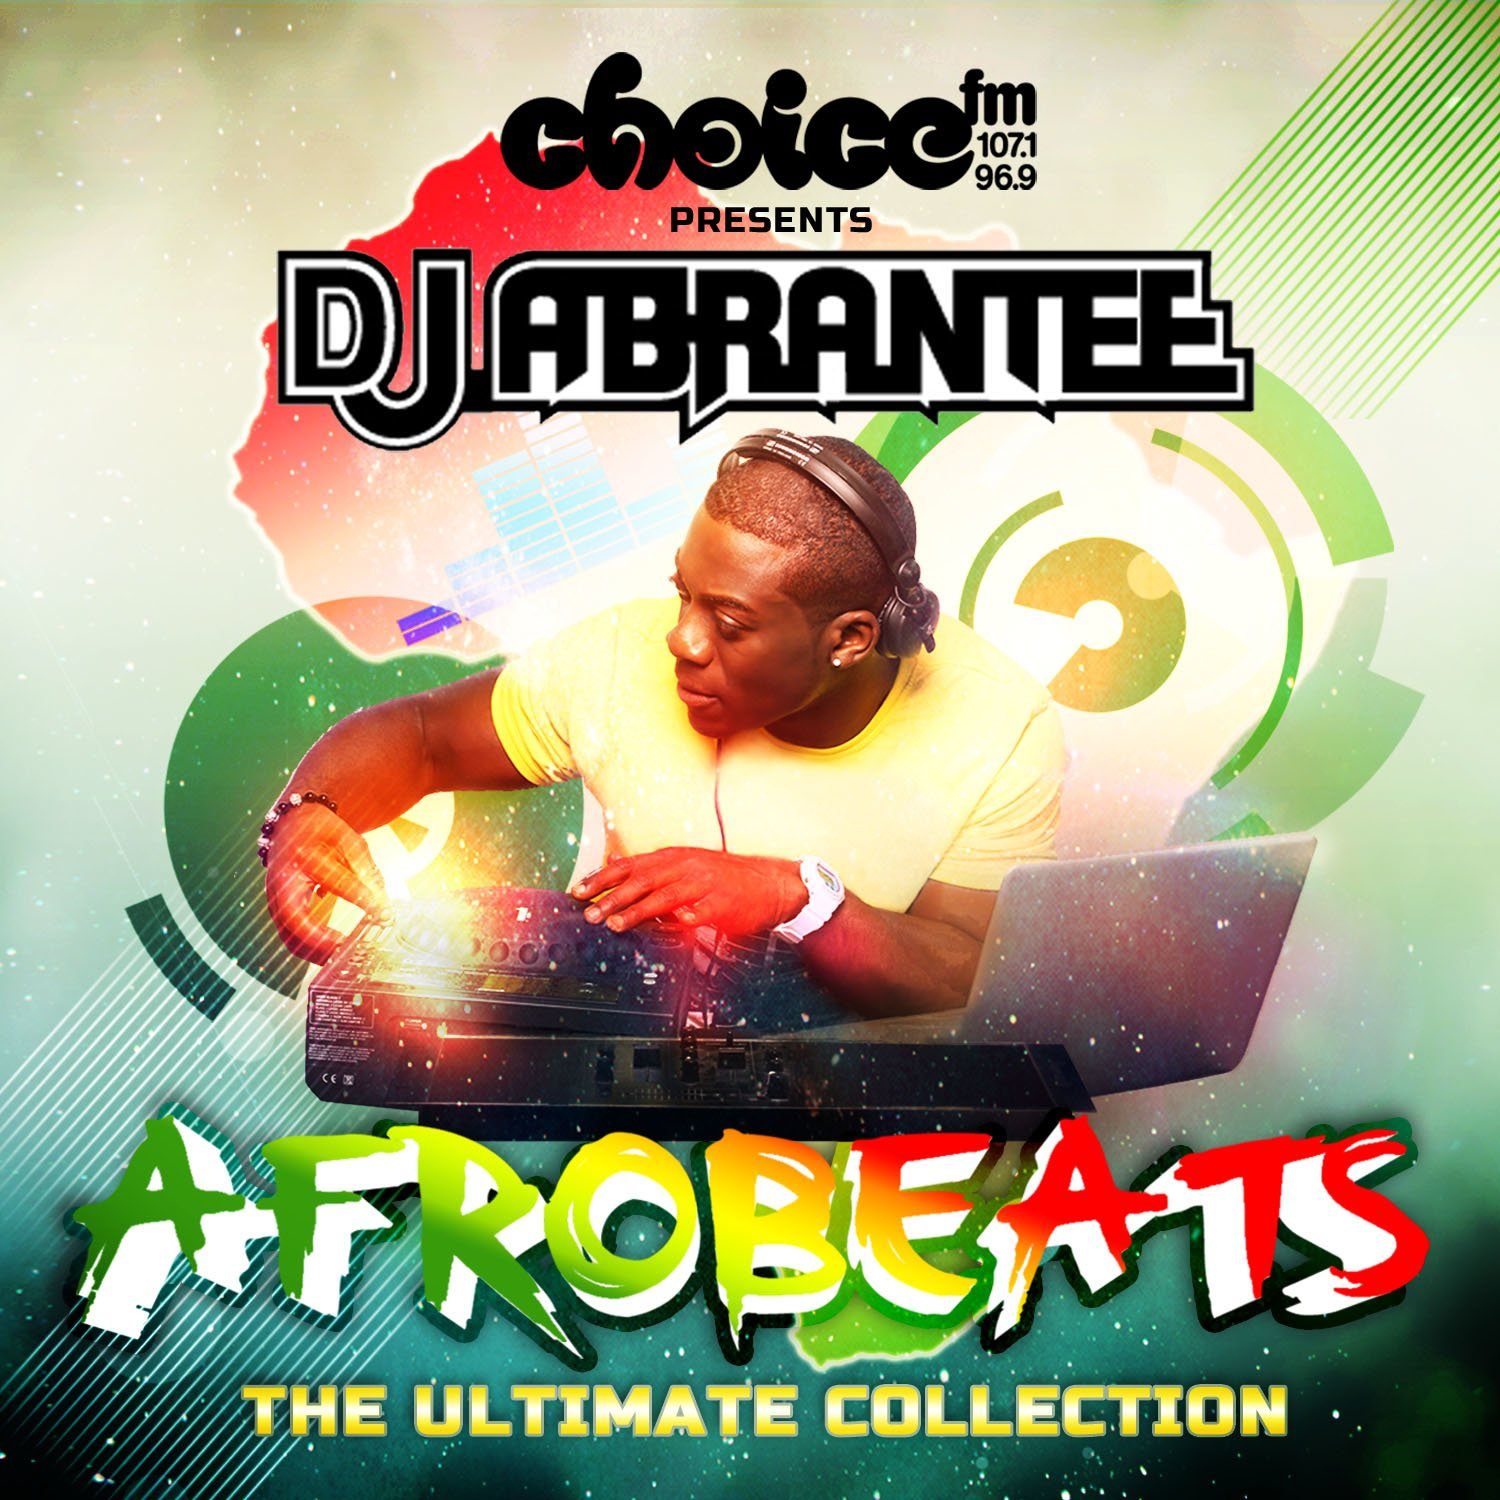 Afrobeats The Ultimate Collection Artwork